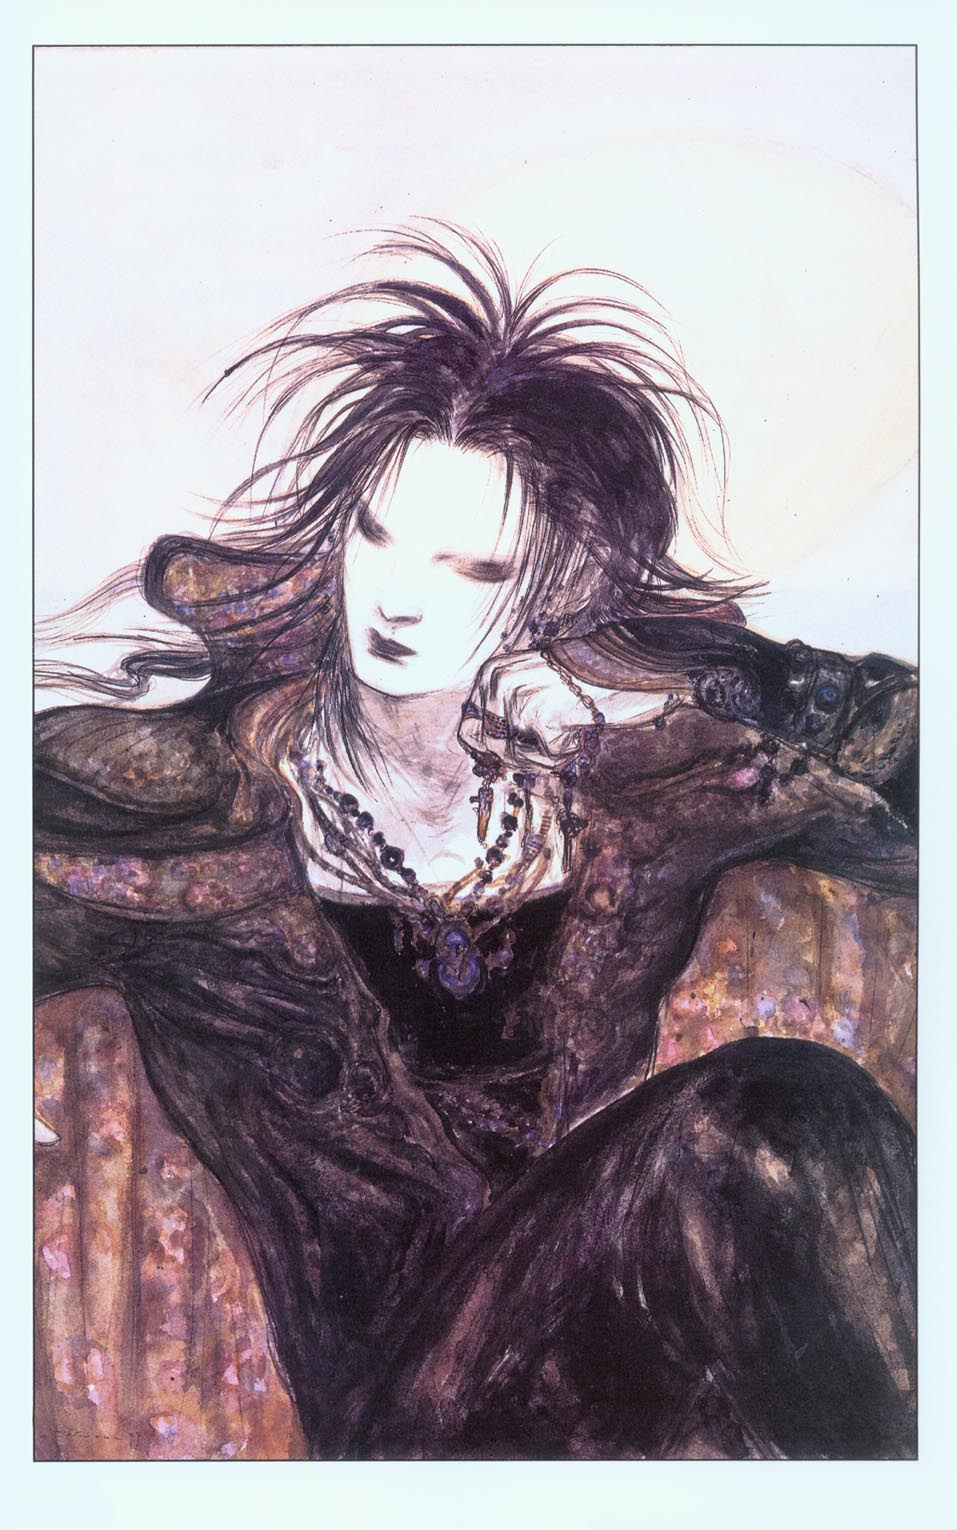 Sandman_-_The_Dream_Hunters_p097.jpg